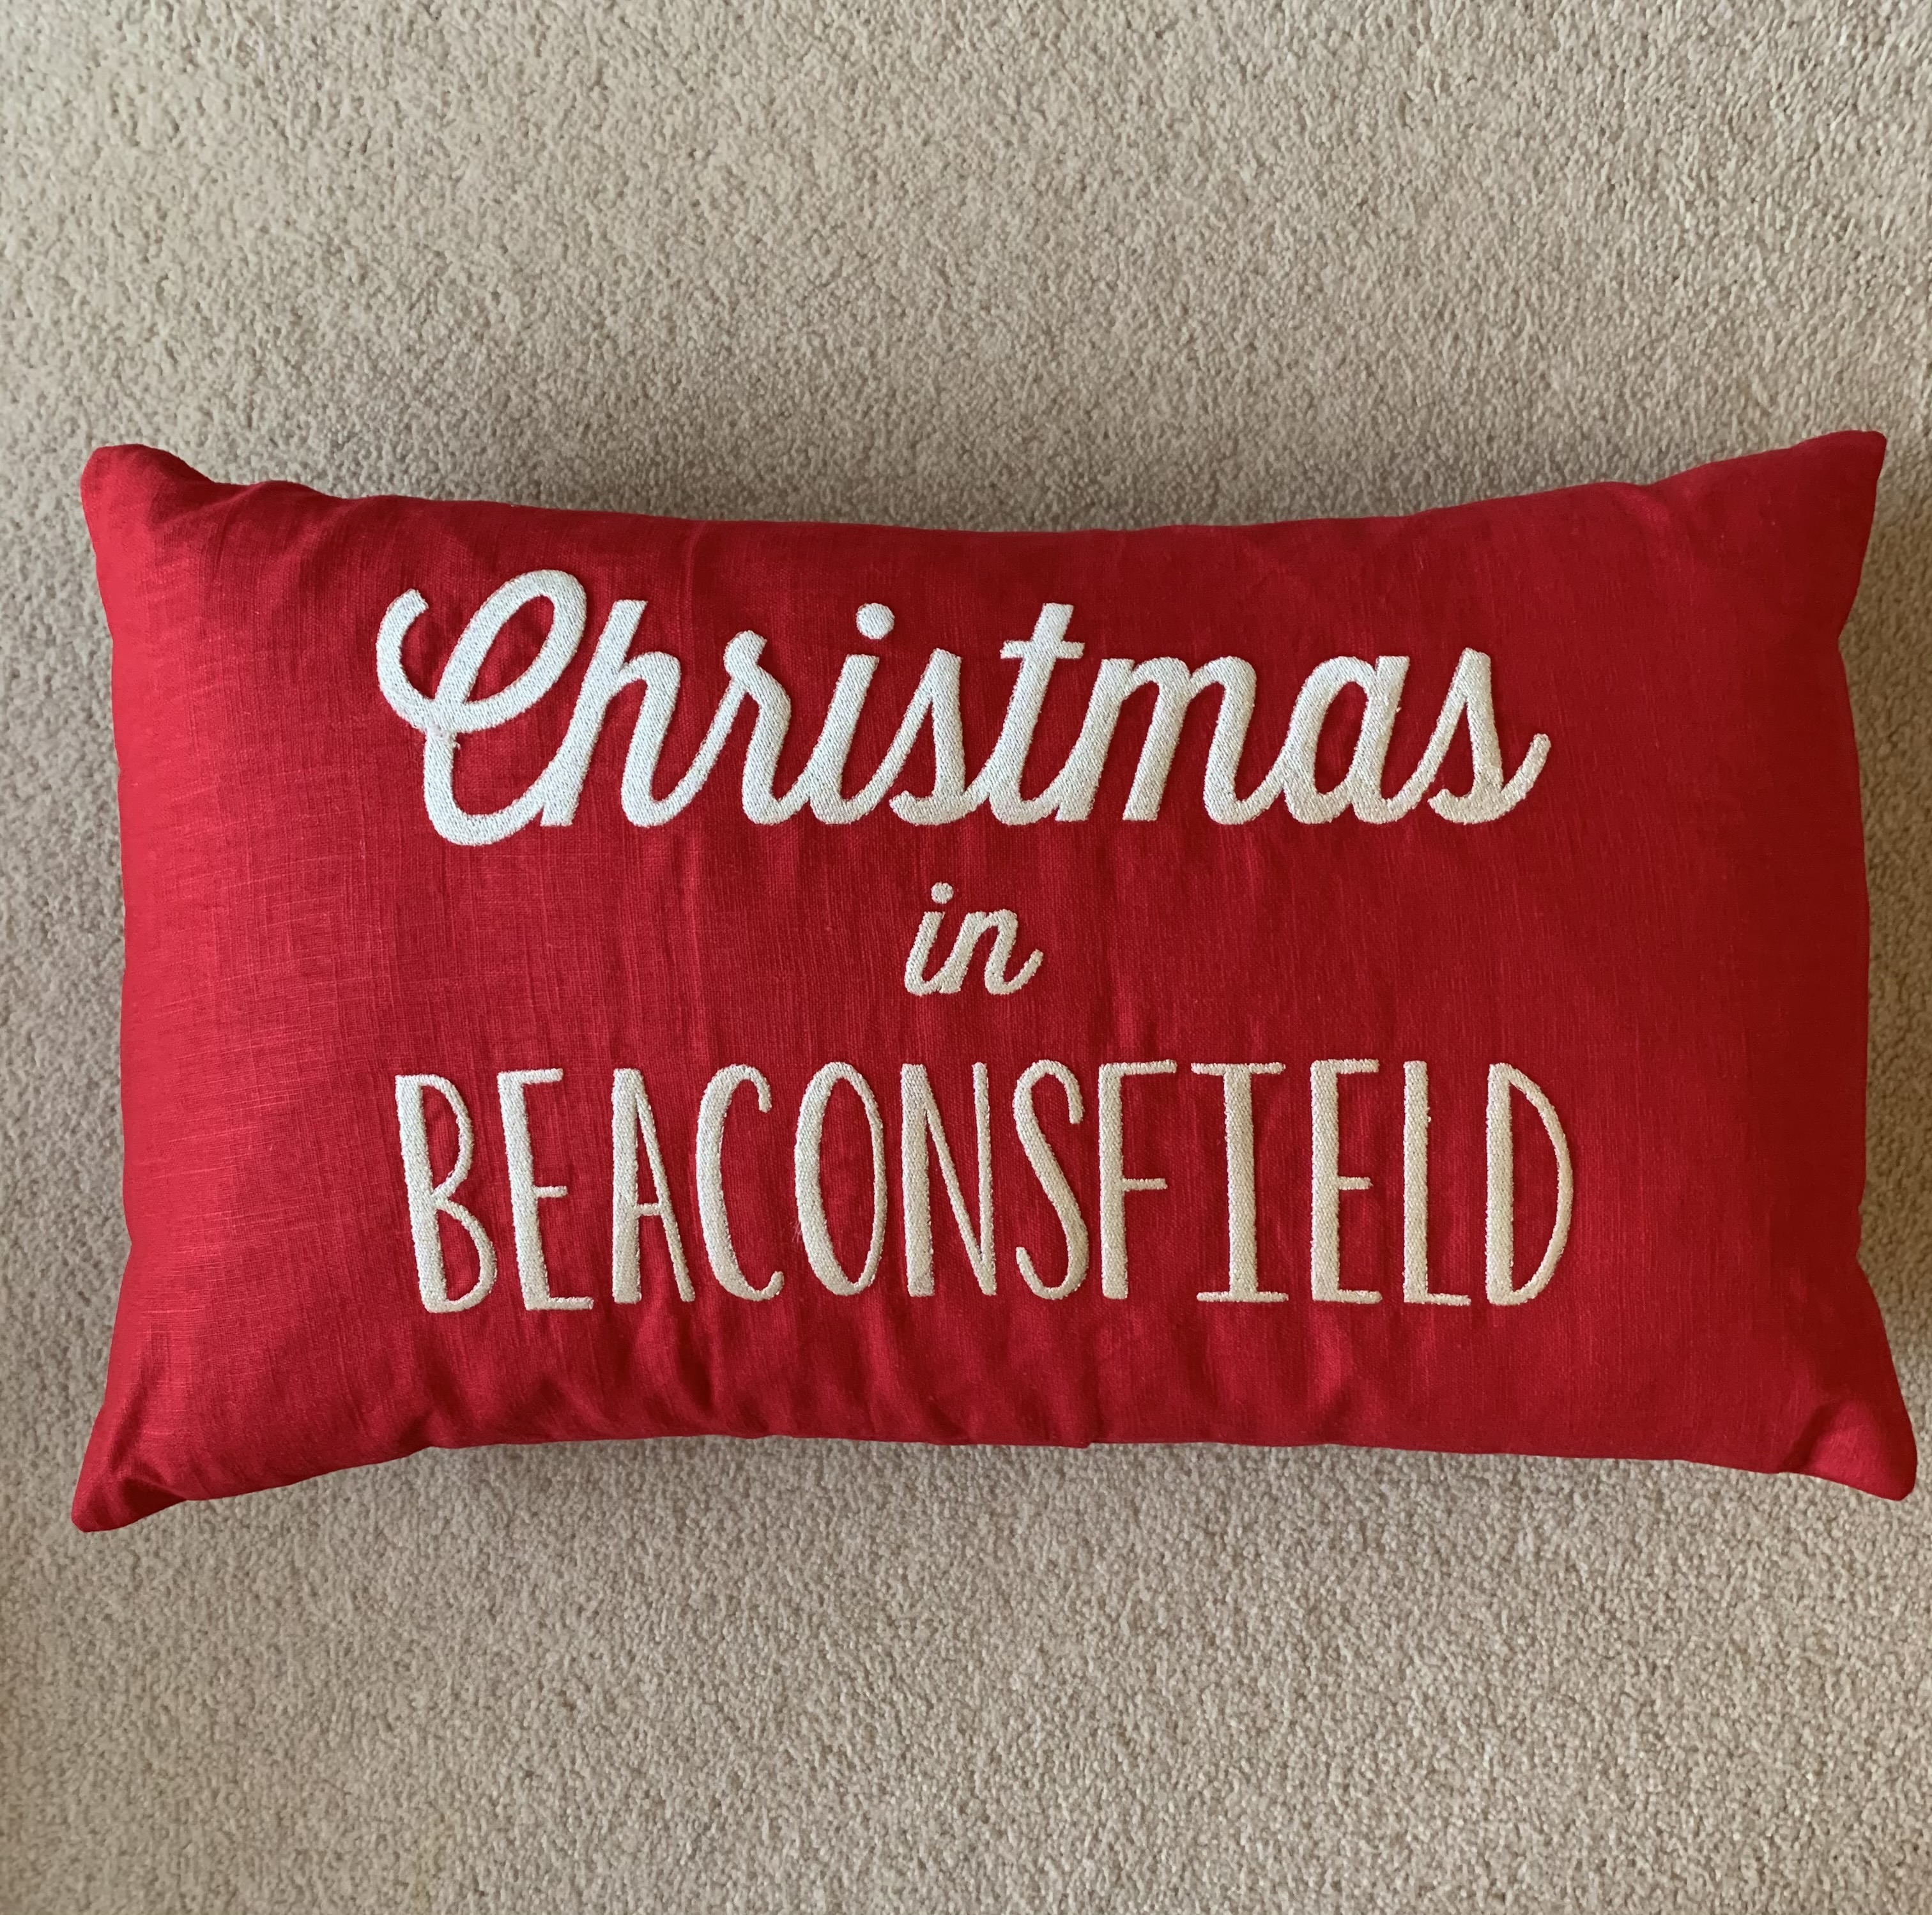 Beaconsfield Christmas Cushion Red Linen - Christmas in Beaconsfield